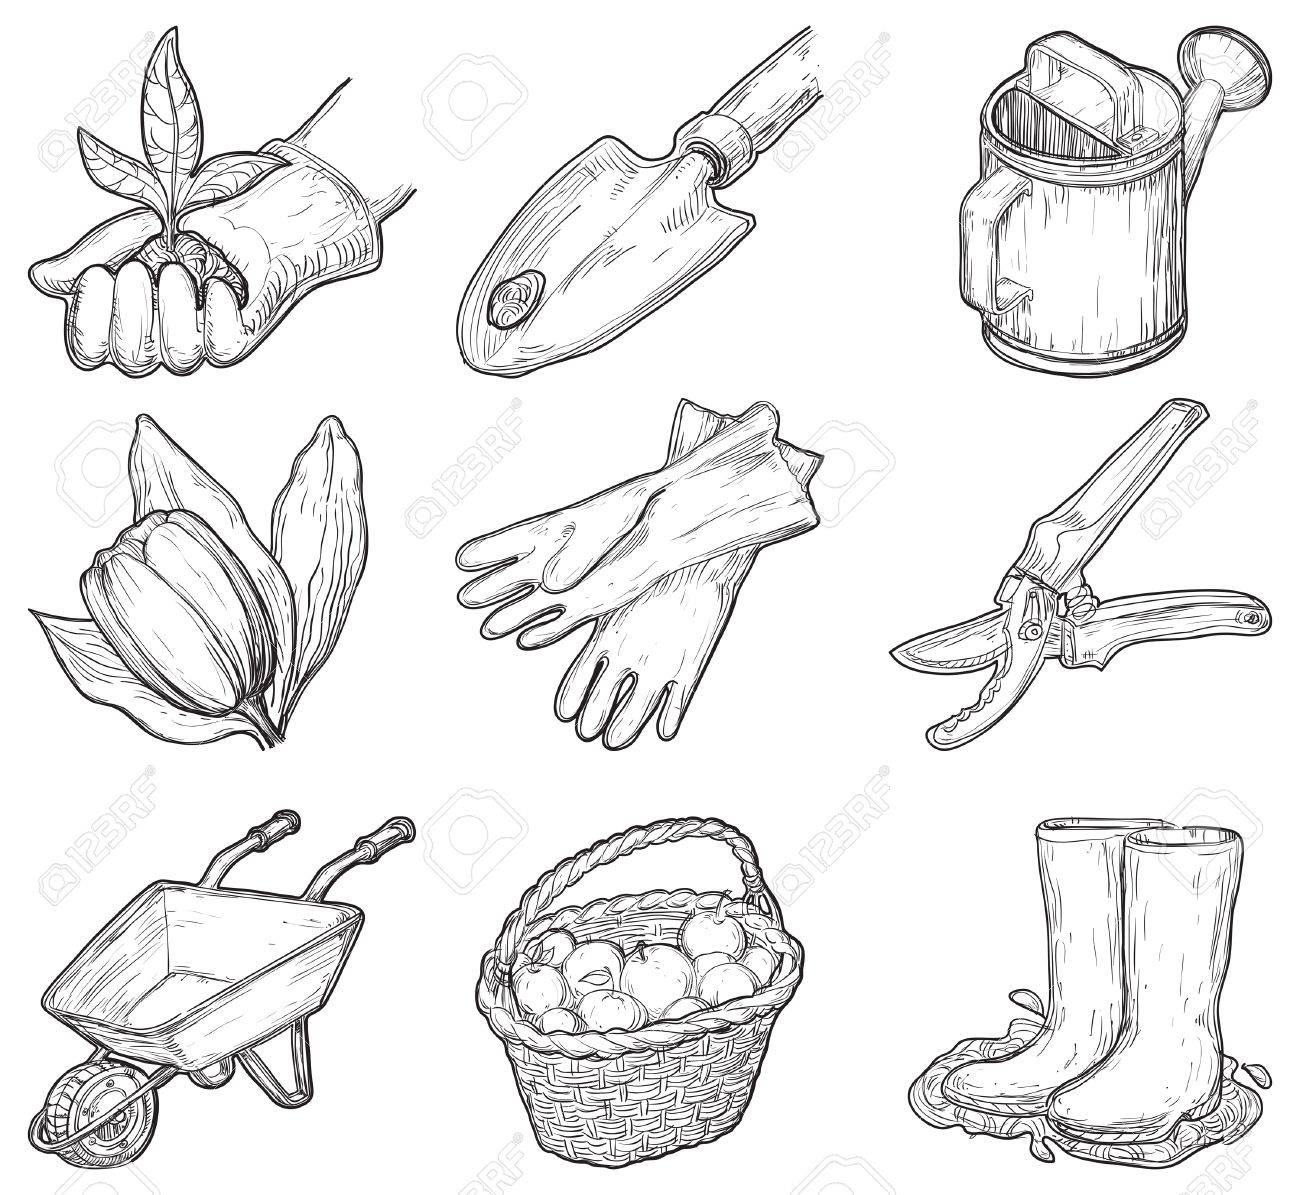 Wonderful Garden Tools And Things Vector Set Of Garden Icons At At Engraved  ZO75